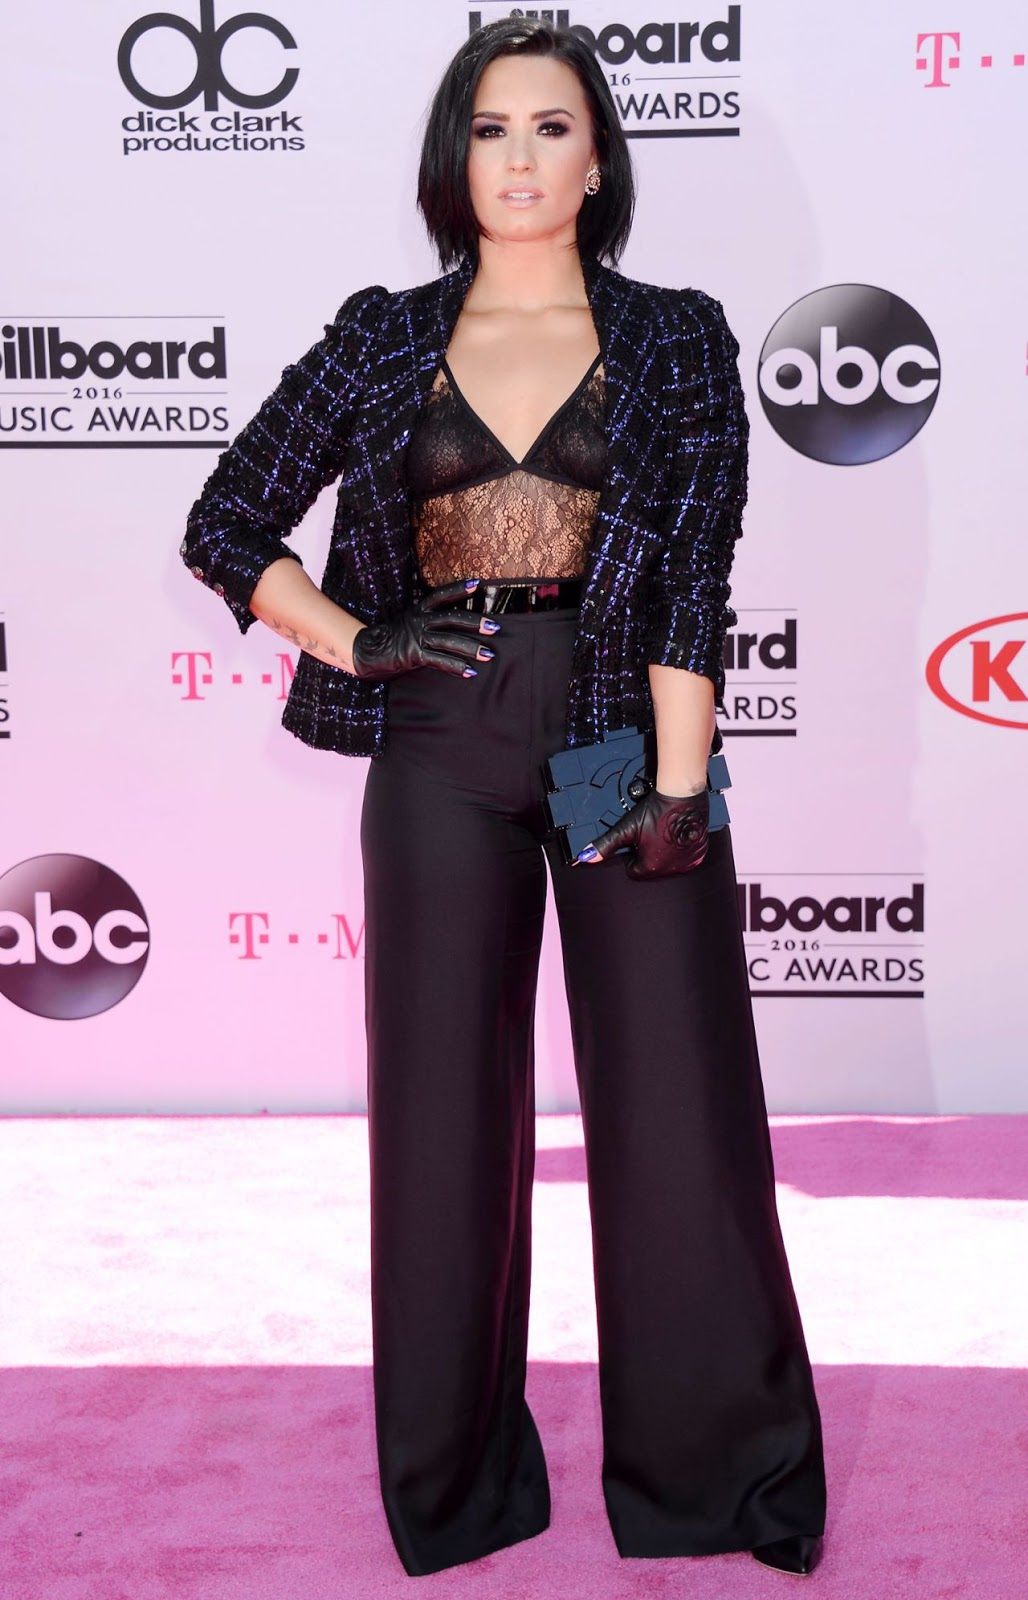 Demi Lovata wears lace bra top to the Billboard Music Awards 2016